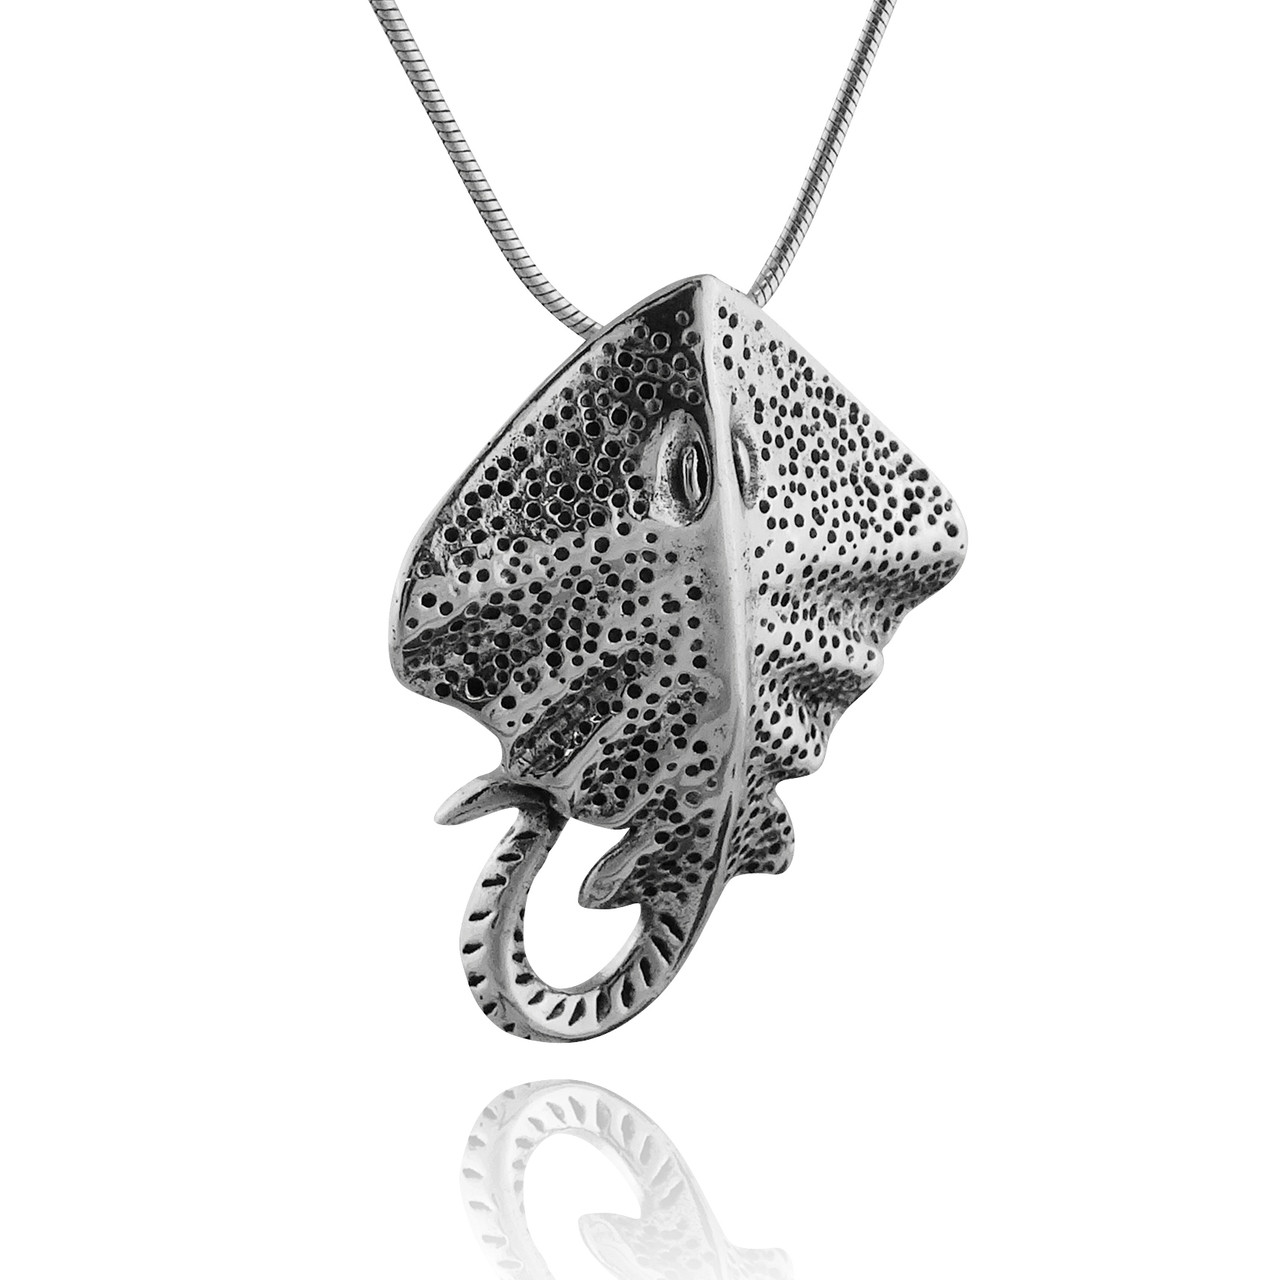 3d stingray pendant necklace 925 sterling silver fashionjunkie4life 3d stingray pendant necklace 925 sterling silver mozeypictures Gallery